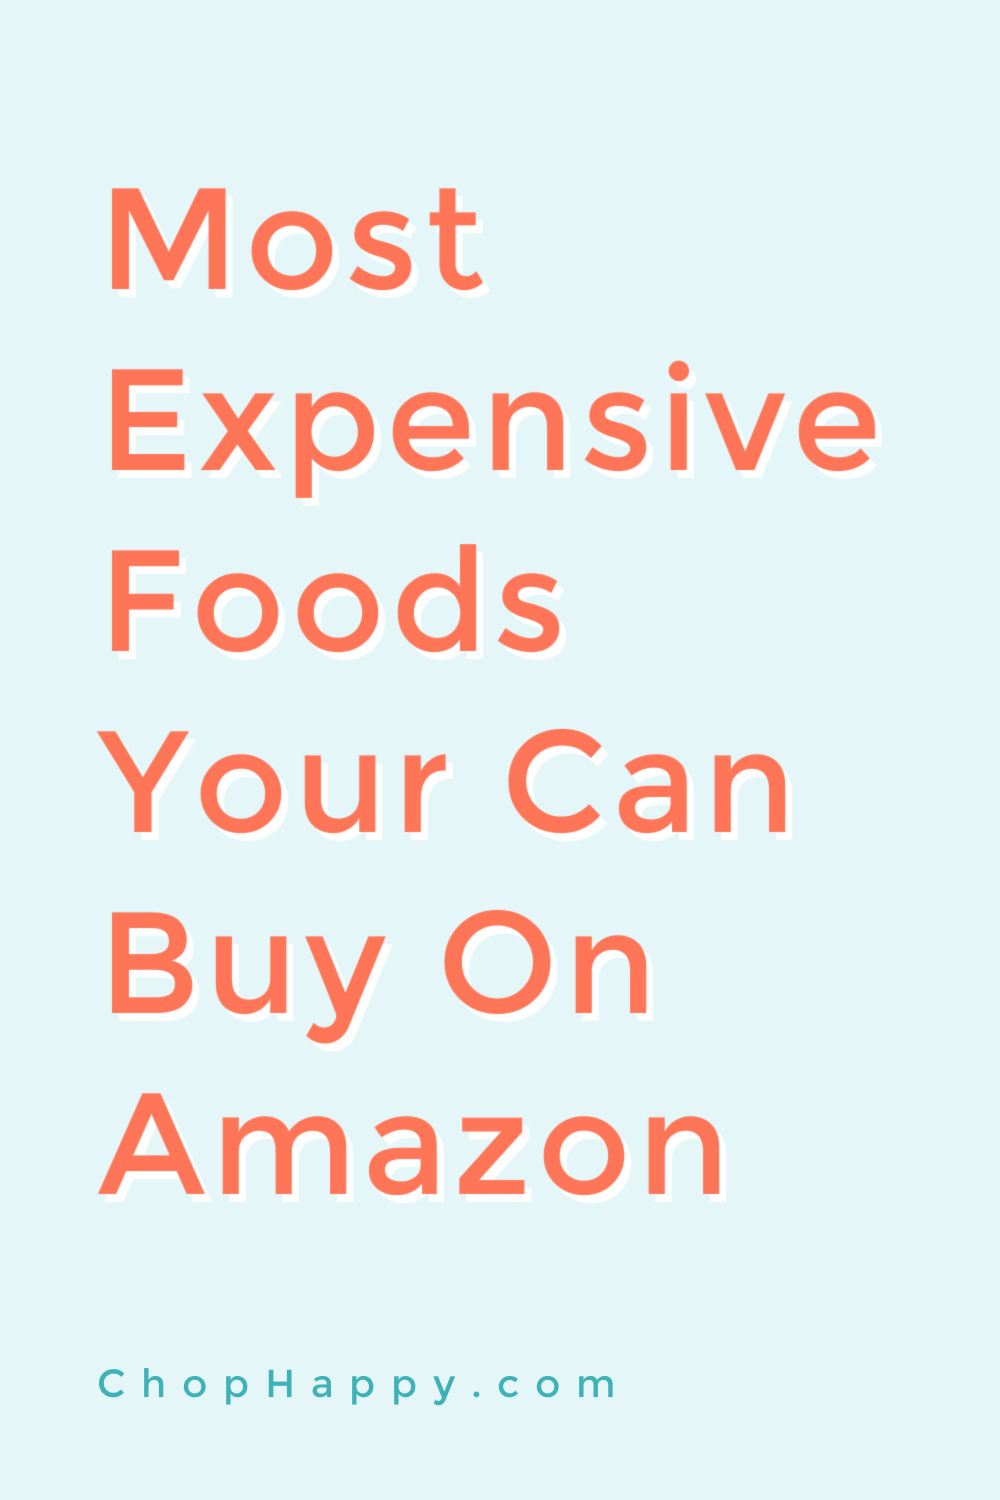 Most Expensive Foods Your Can Buy On Amazon. Steak, lobster, caviar, and saffron top the list of the most pricey foods you can buy on Amazon! Happy Shopping! www.ChopHappy.com #fancyfoods #foodgiftsideas